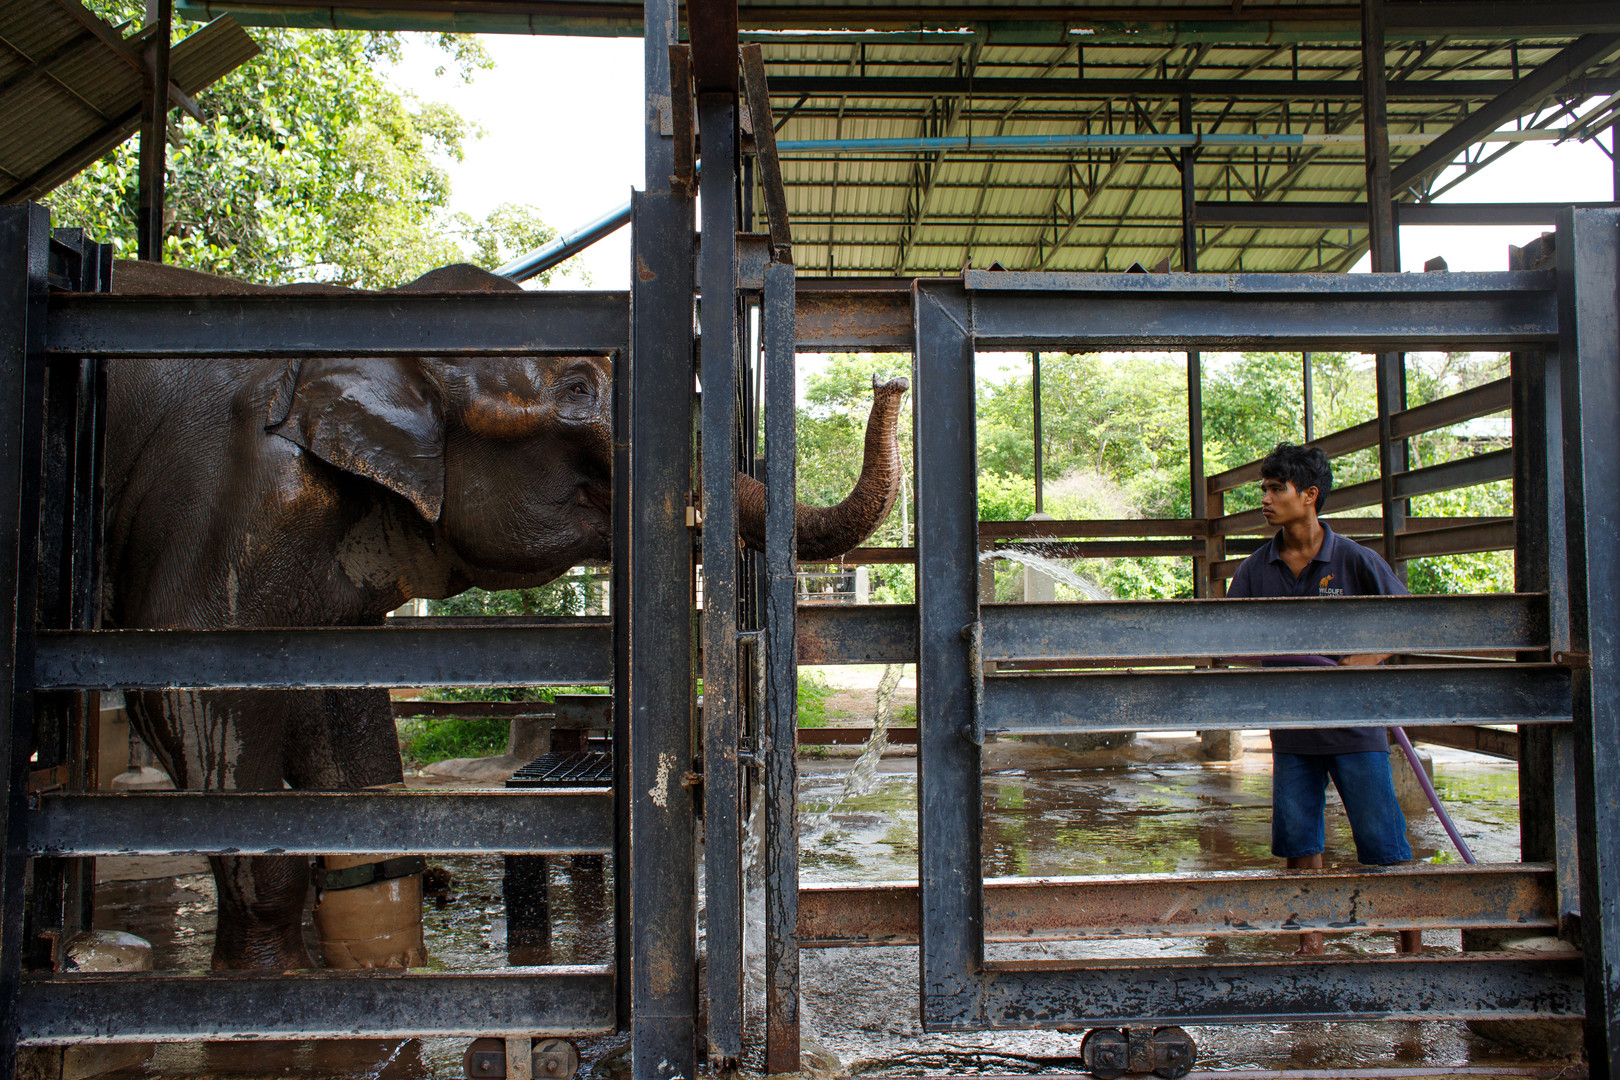 Here Asian Elephant Chhouk enjoys a good wash while keepers perform their daily clean out of his sleeping and training quarters at the Wildlife Alliance managed Elephant compound of the Phnom Tamao wildlife rescue centre in Cambodia. Chhouk maintains a 'no food, no love' mentality (as do the other elephants for most of the time), and is rewarded with watermelon and banana treats during training to supplement his one hundred or so kilograms of grasses and sugar cane food each day.